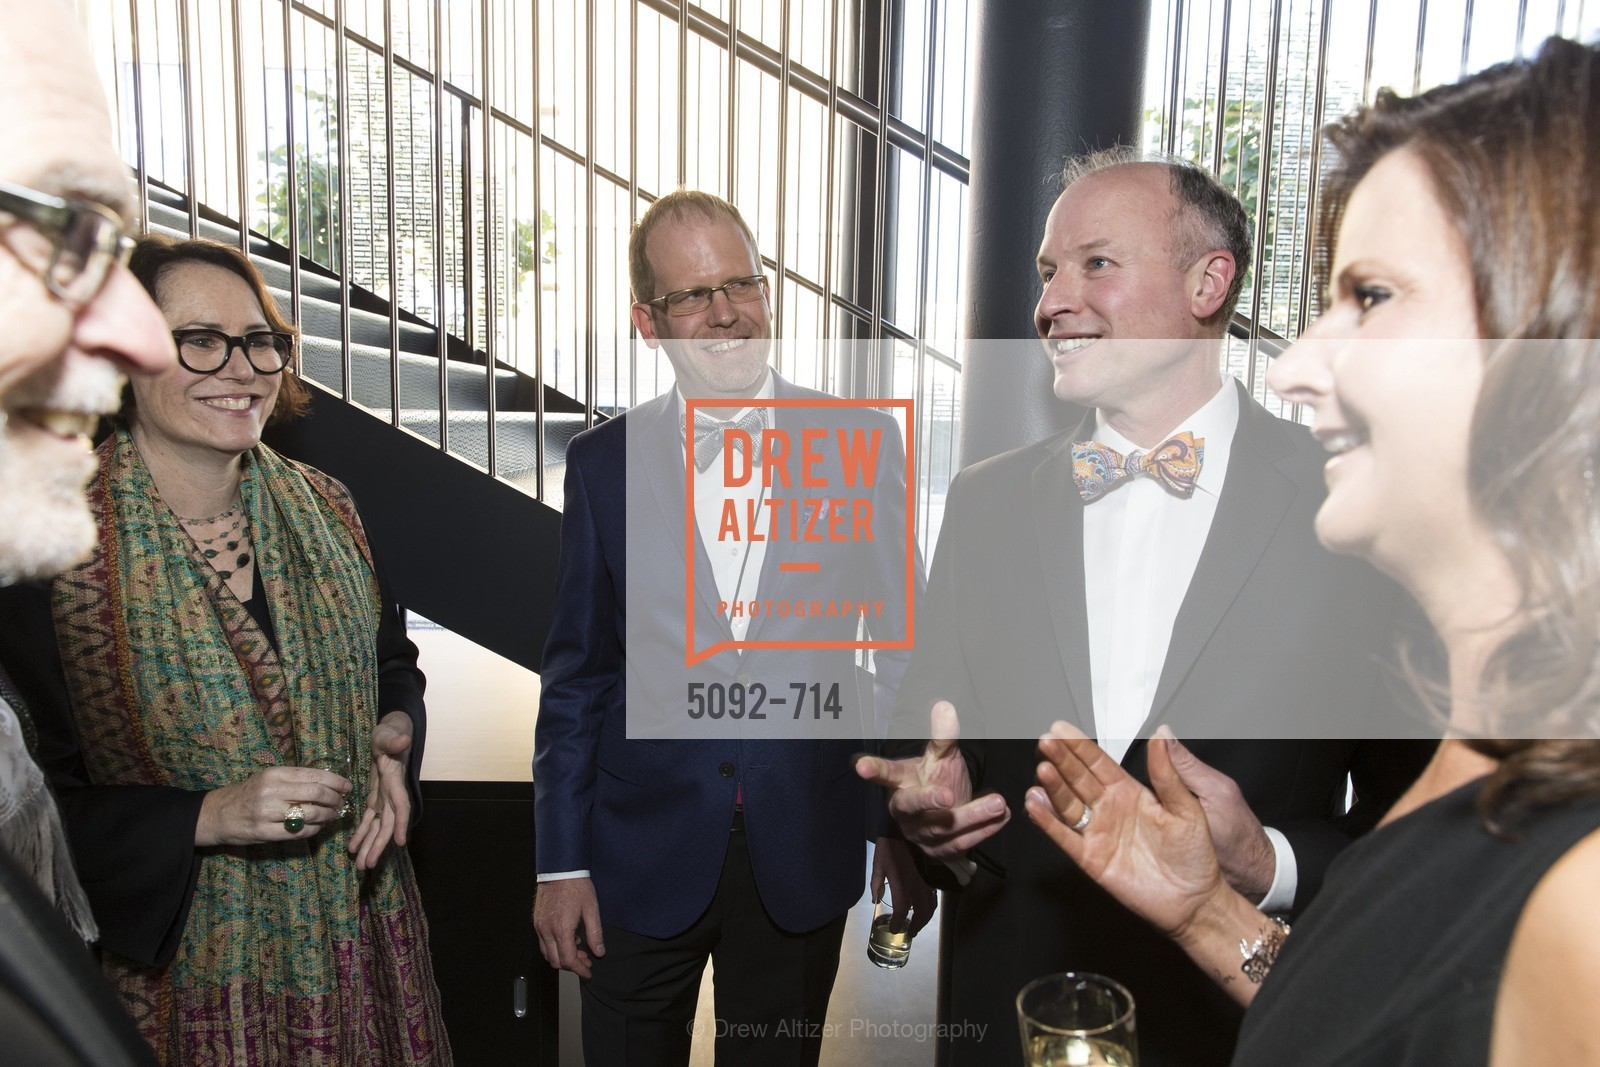 KT Rabin, Tom Porter, Don Derheim, Diane Mailey, SFJAZZ Gala 2015 Honors Joni Mitchell with Lifetime Achievement Award, US, May 8th, 2015,Drew Altizer, Drew Altizer Photography, full-service agency, private events, San Francisco photographer, photographer california